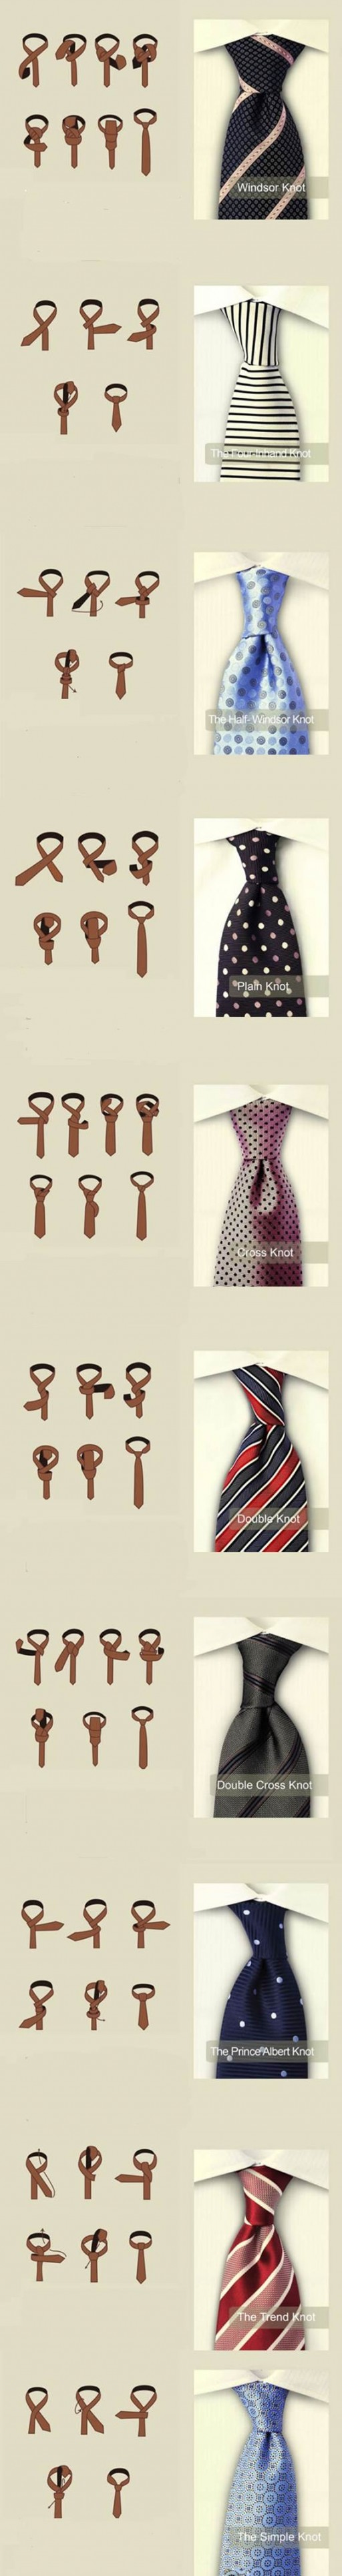 How To Tie A Tie - DIY Experts Teach You 10 Ways To Tie A Tie 2